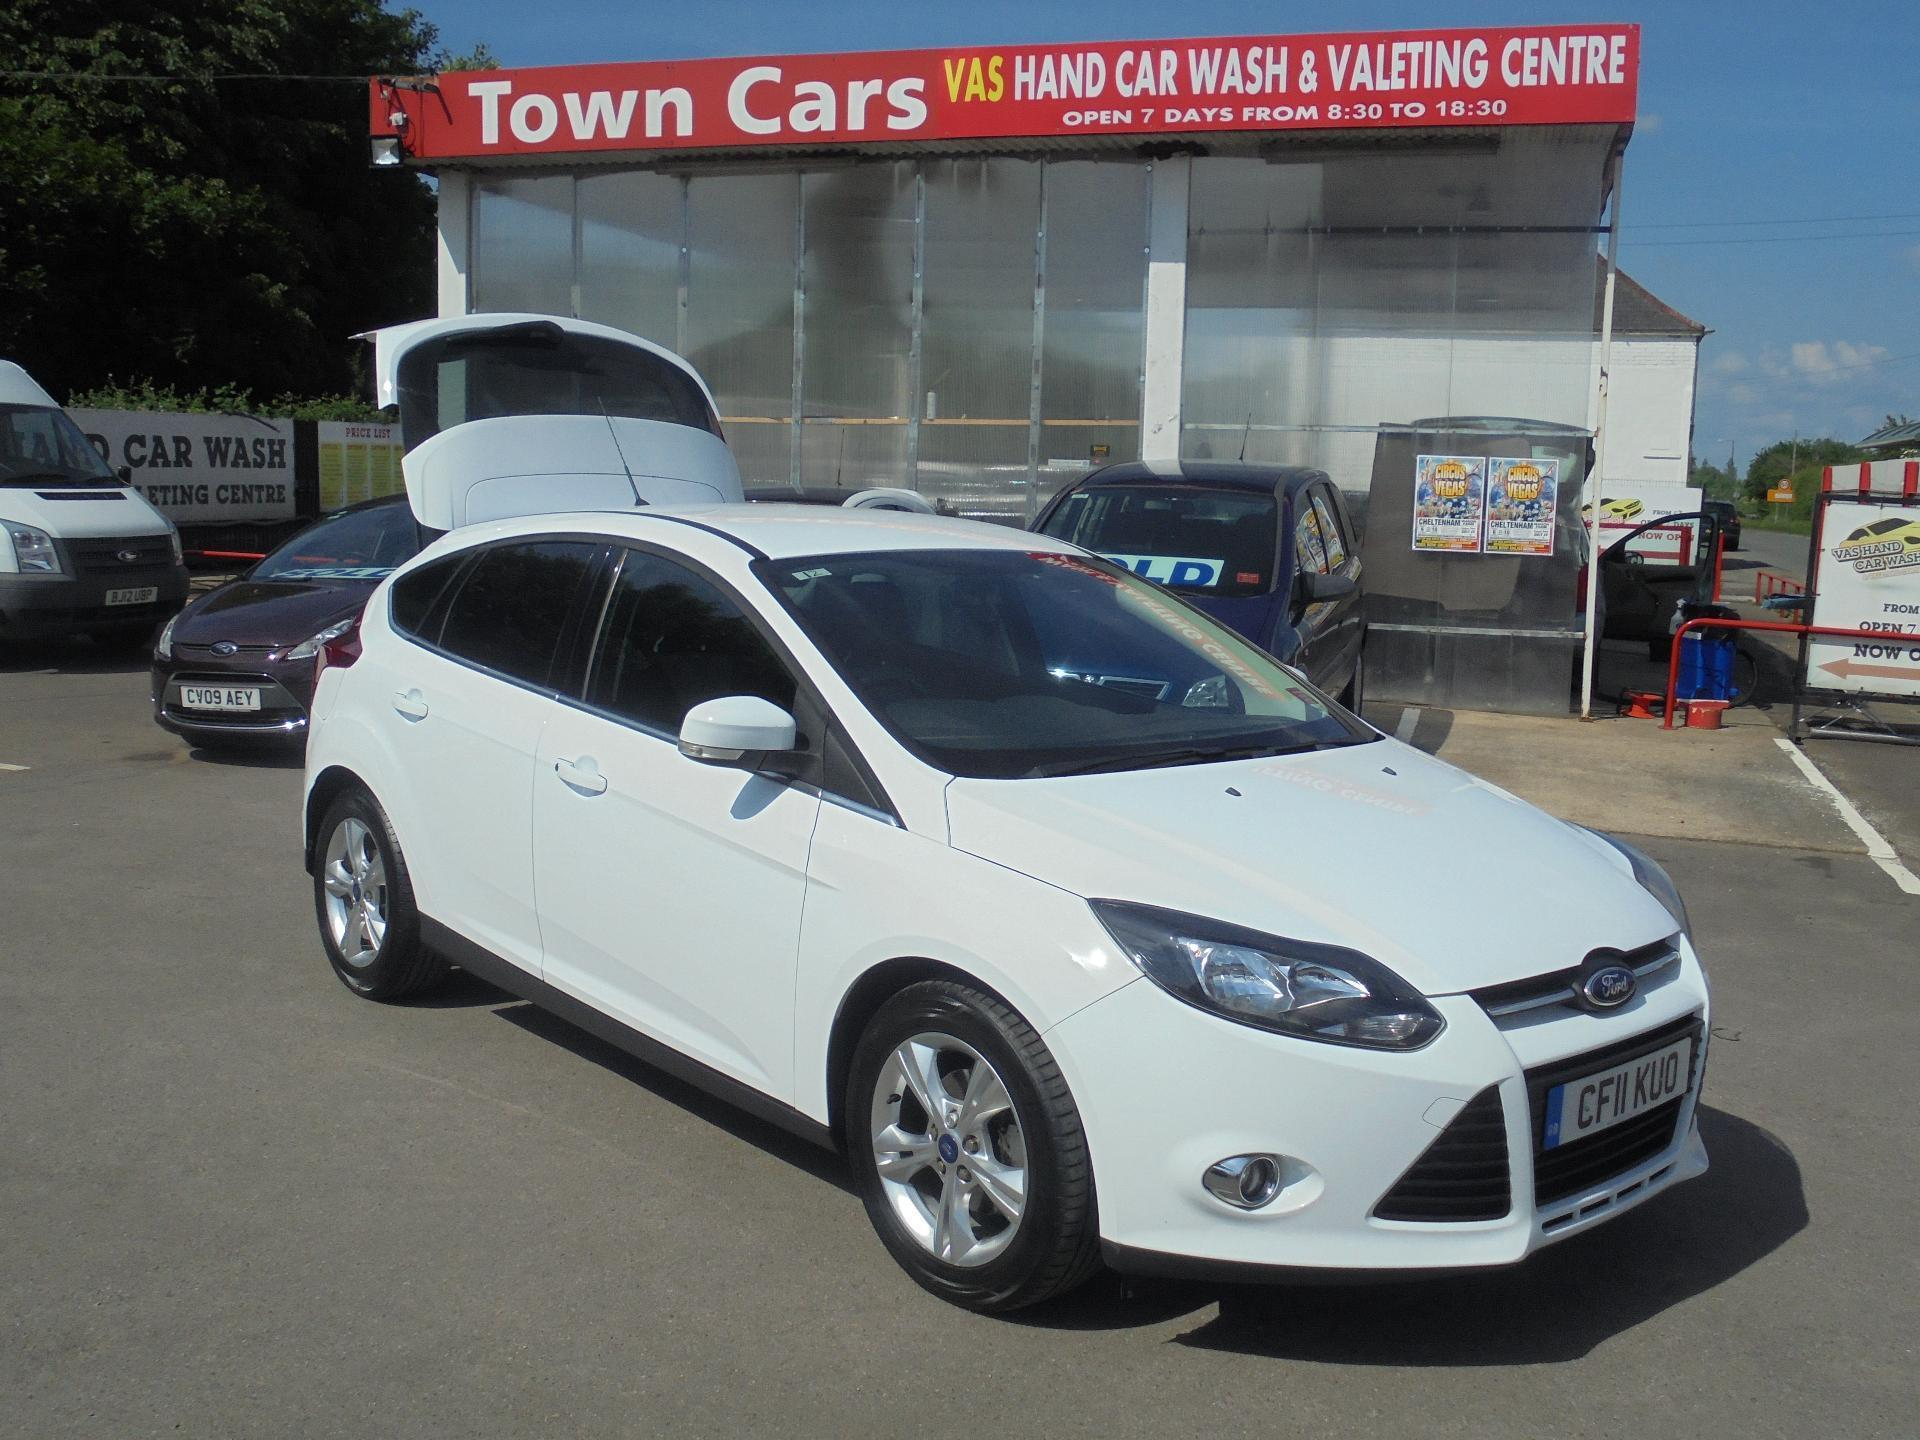 used ford focus cars for sale in cheltenham gloucestershire